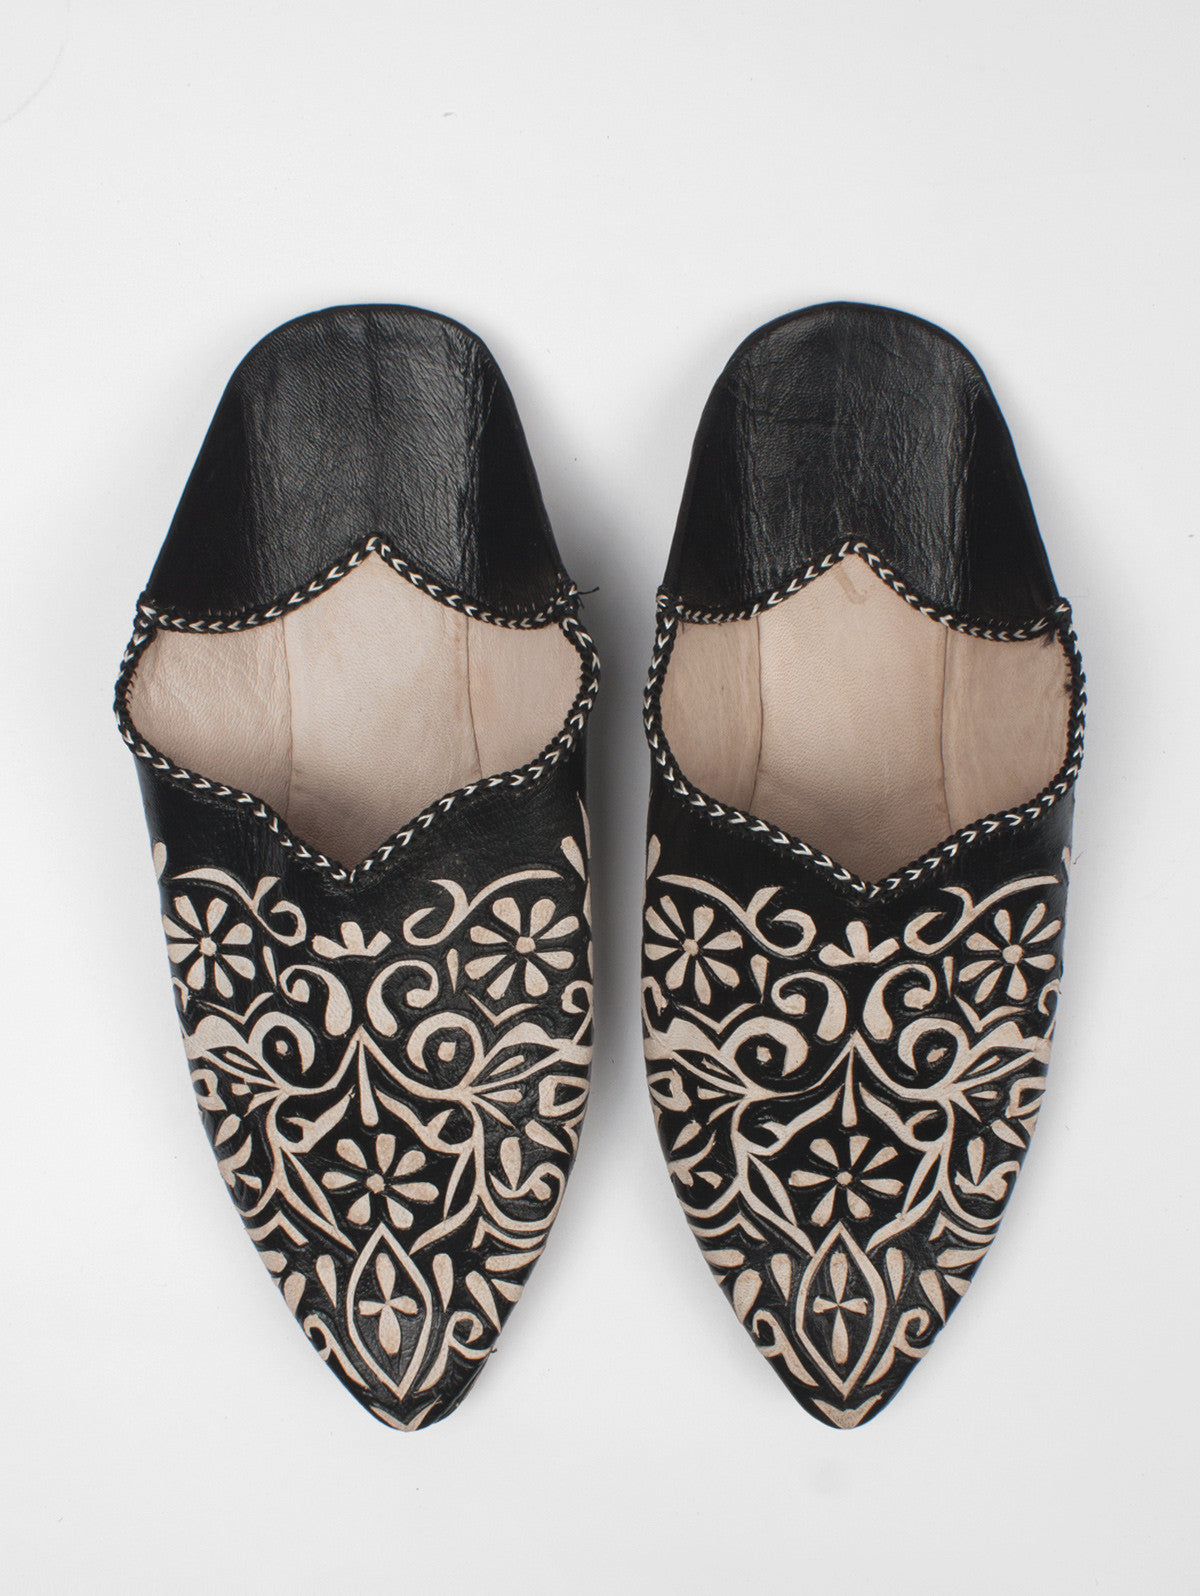 Moroccan Decorative Babouche Slippers, Black (Pack of 2)